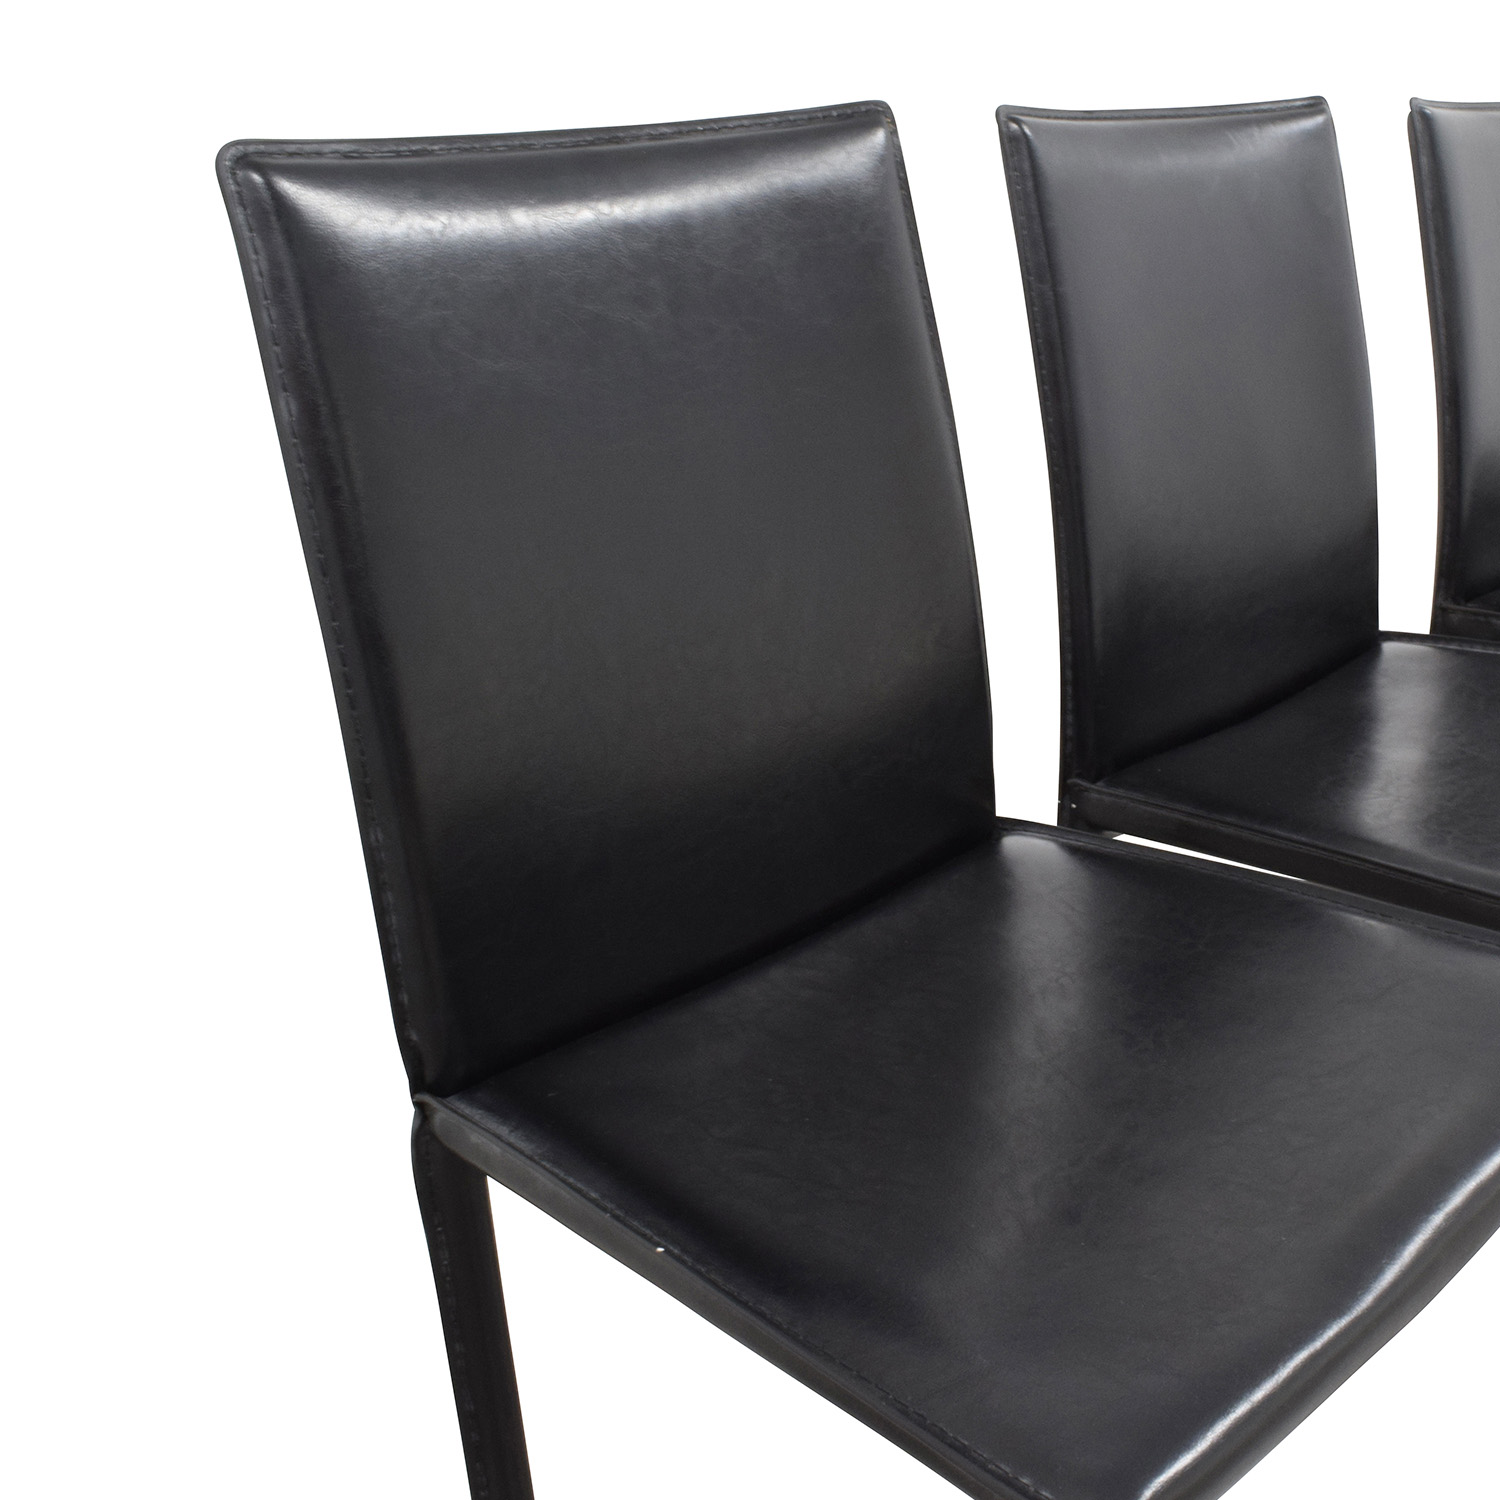 36% OFF InMod InMod Mia Black Leather Chair Chairs